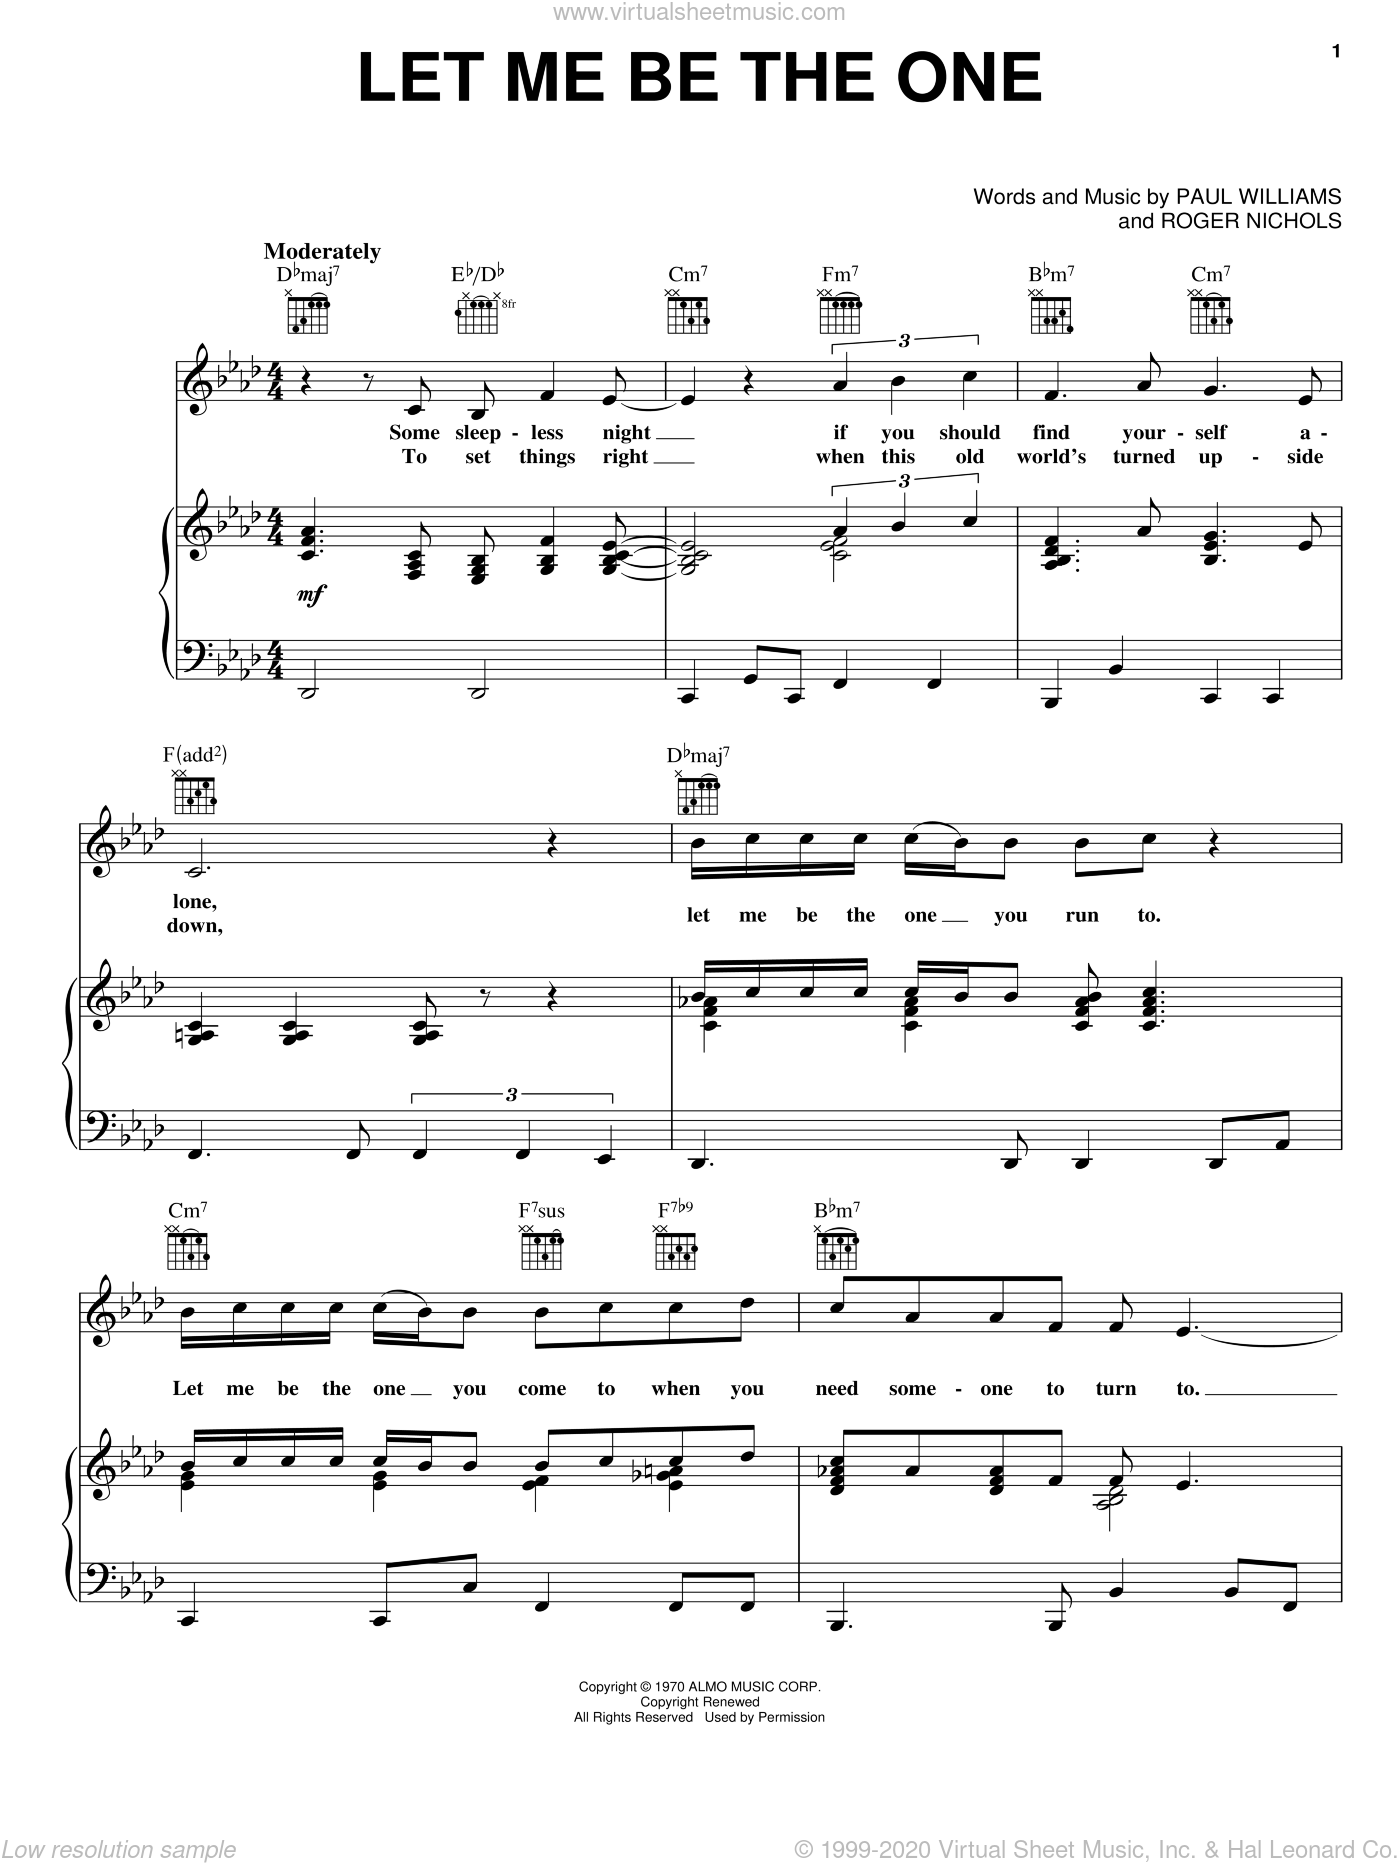 Let Me Be The One sheet music for voice, piano or guitar by Roger Nichols, Carpenters and Paul Williams. Score Image Preview.